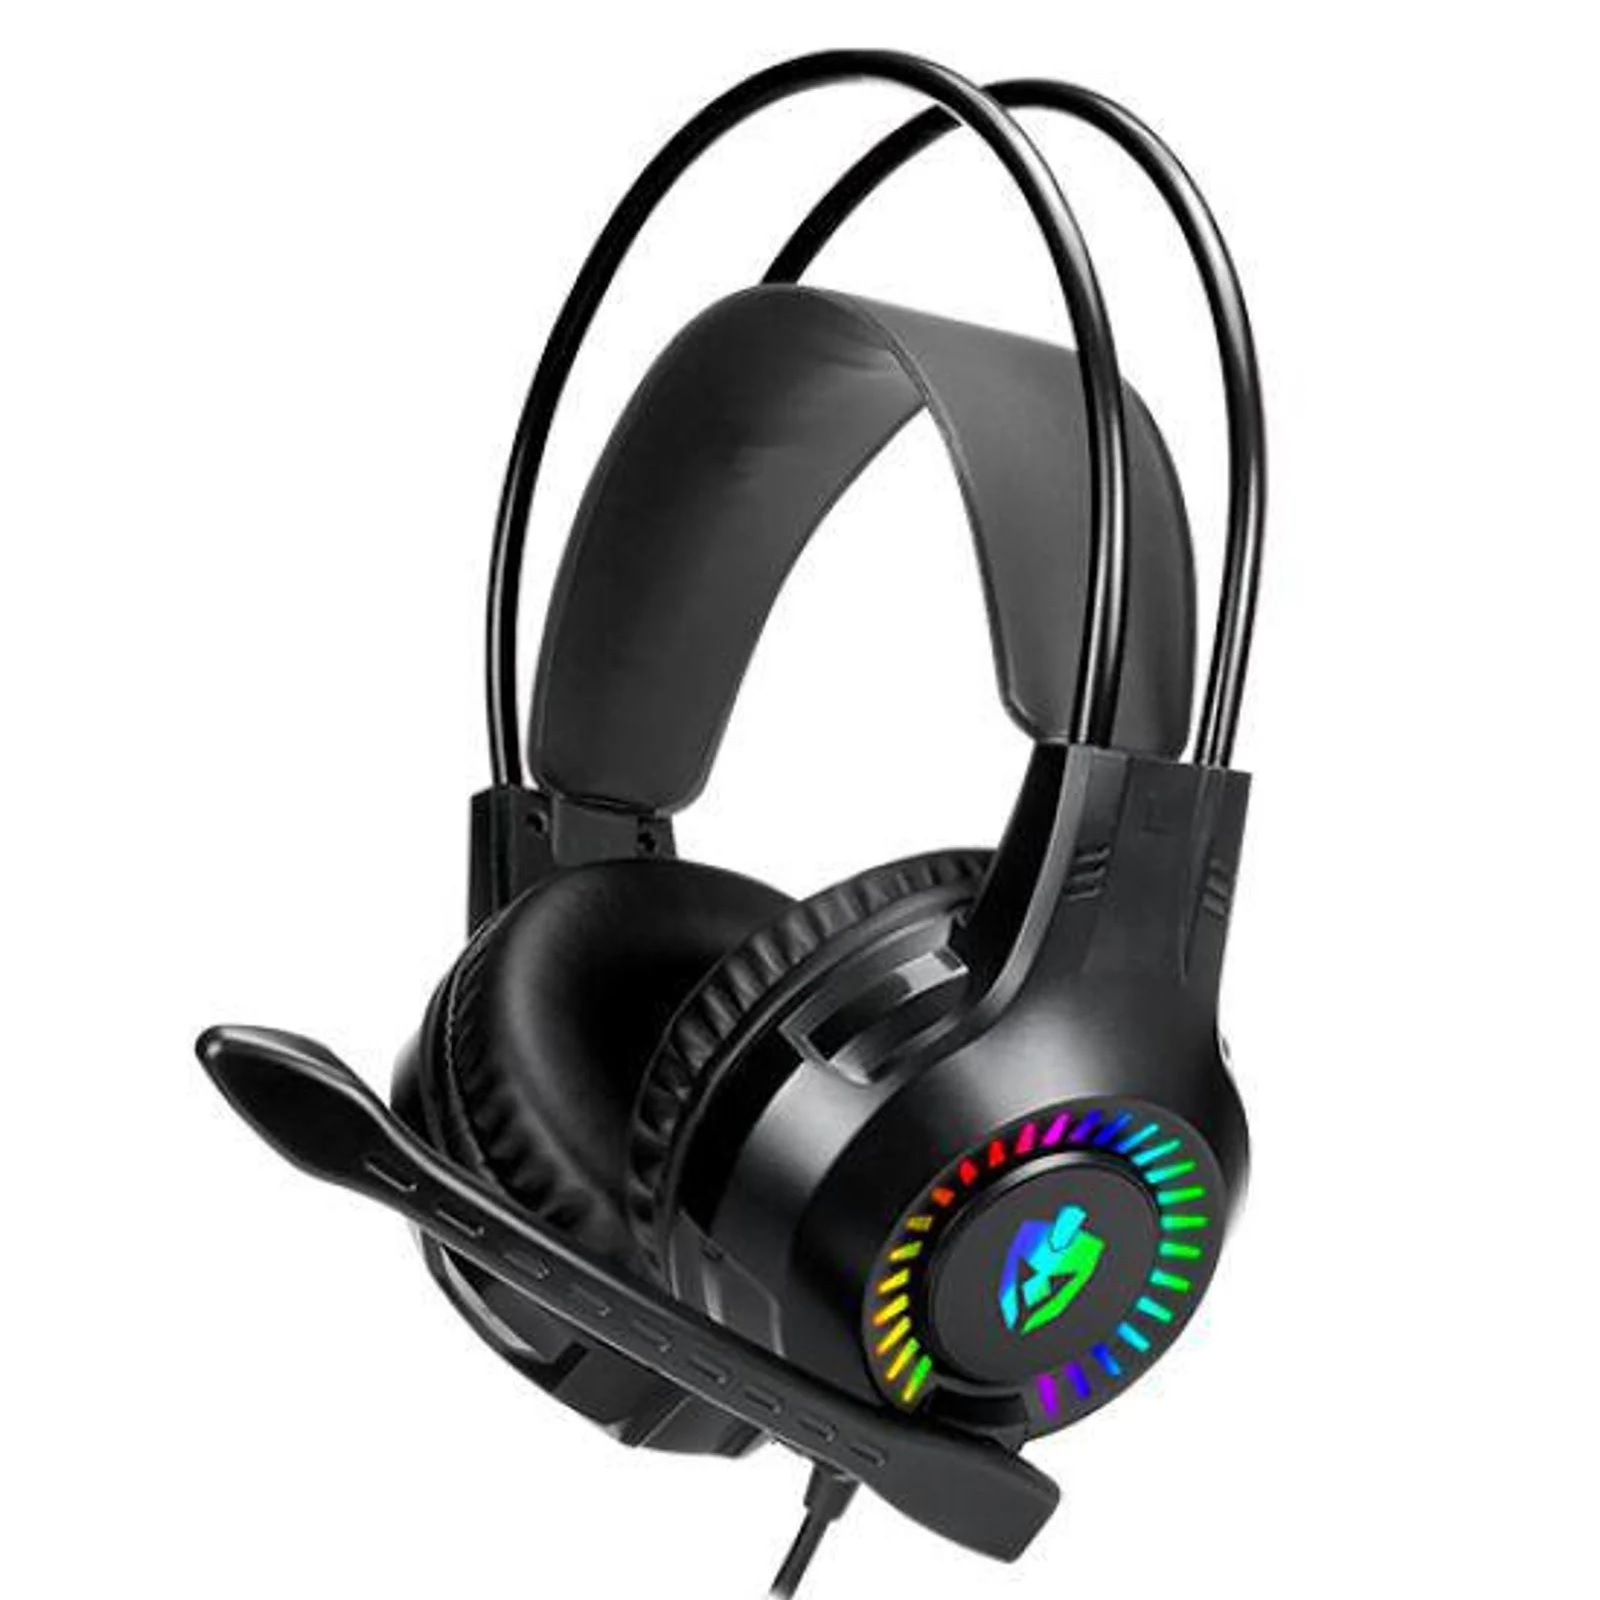 Fone Headset Gamer P2 (2x) + Usb Apolo 7 Cores Eg-304 Evolut